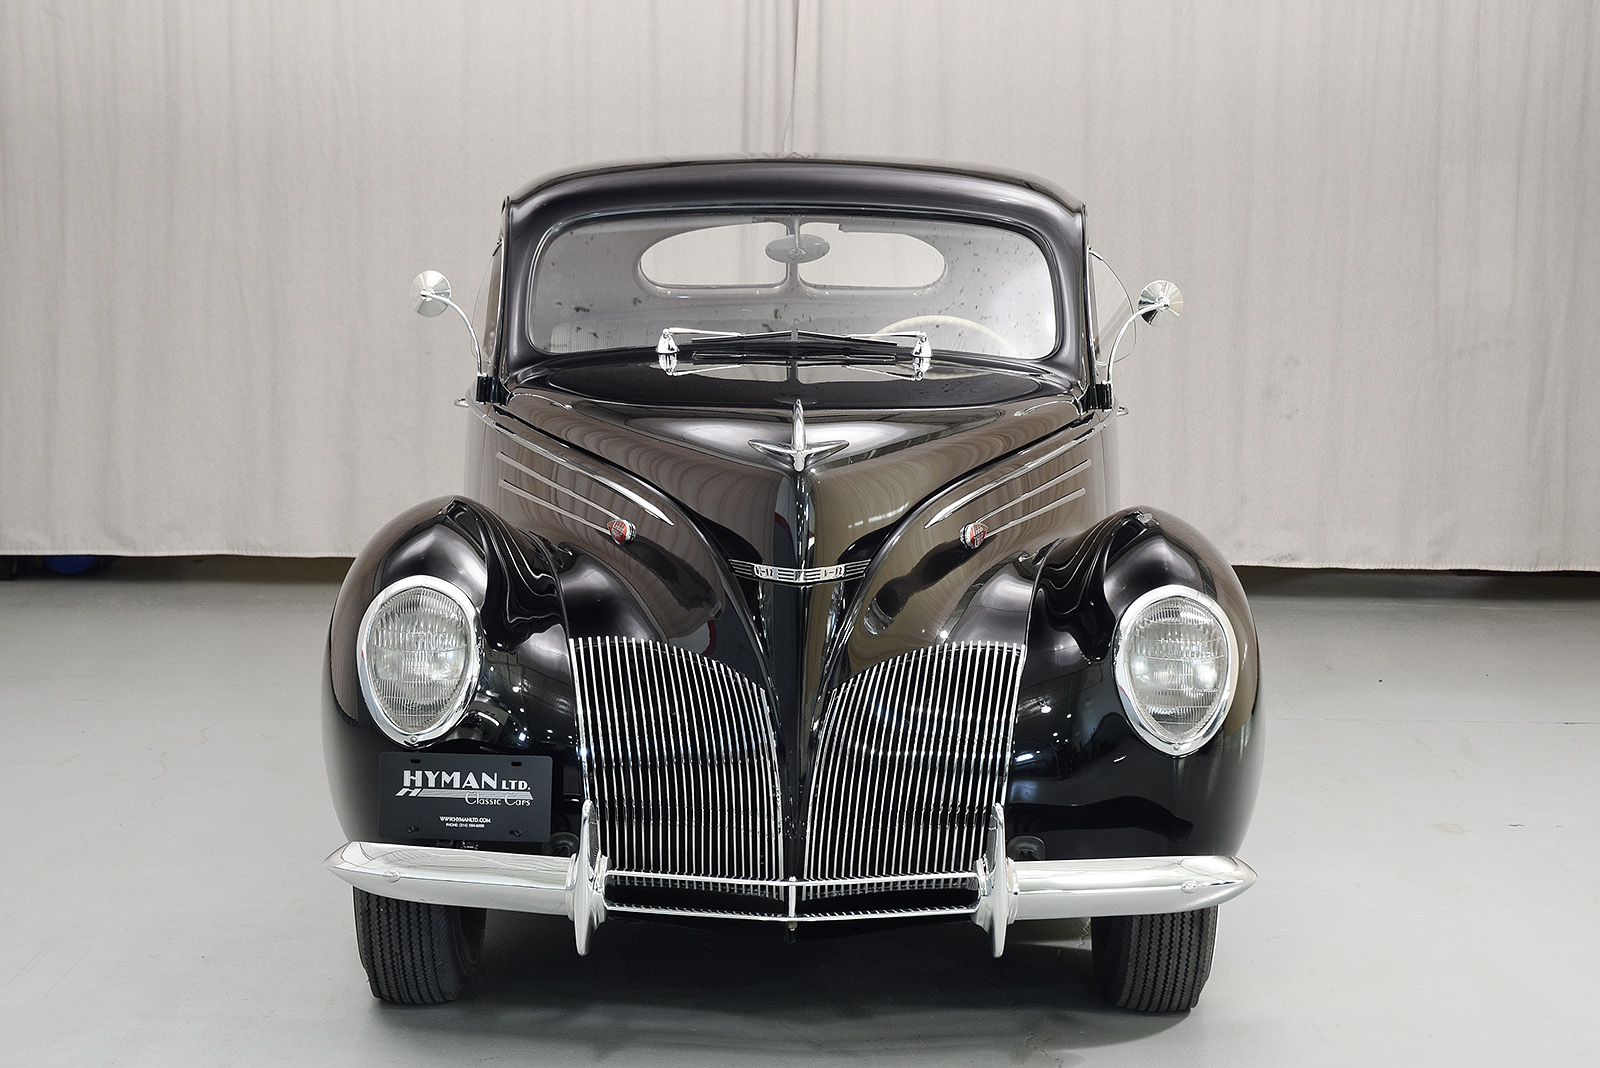 Lincoln Motor Company >> 1939 Lincoln Zephyr Coupe | Hyman Ltd.